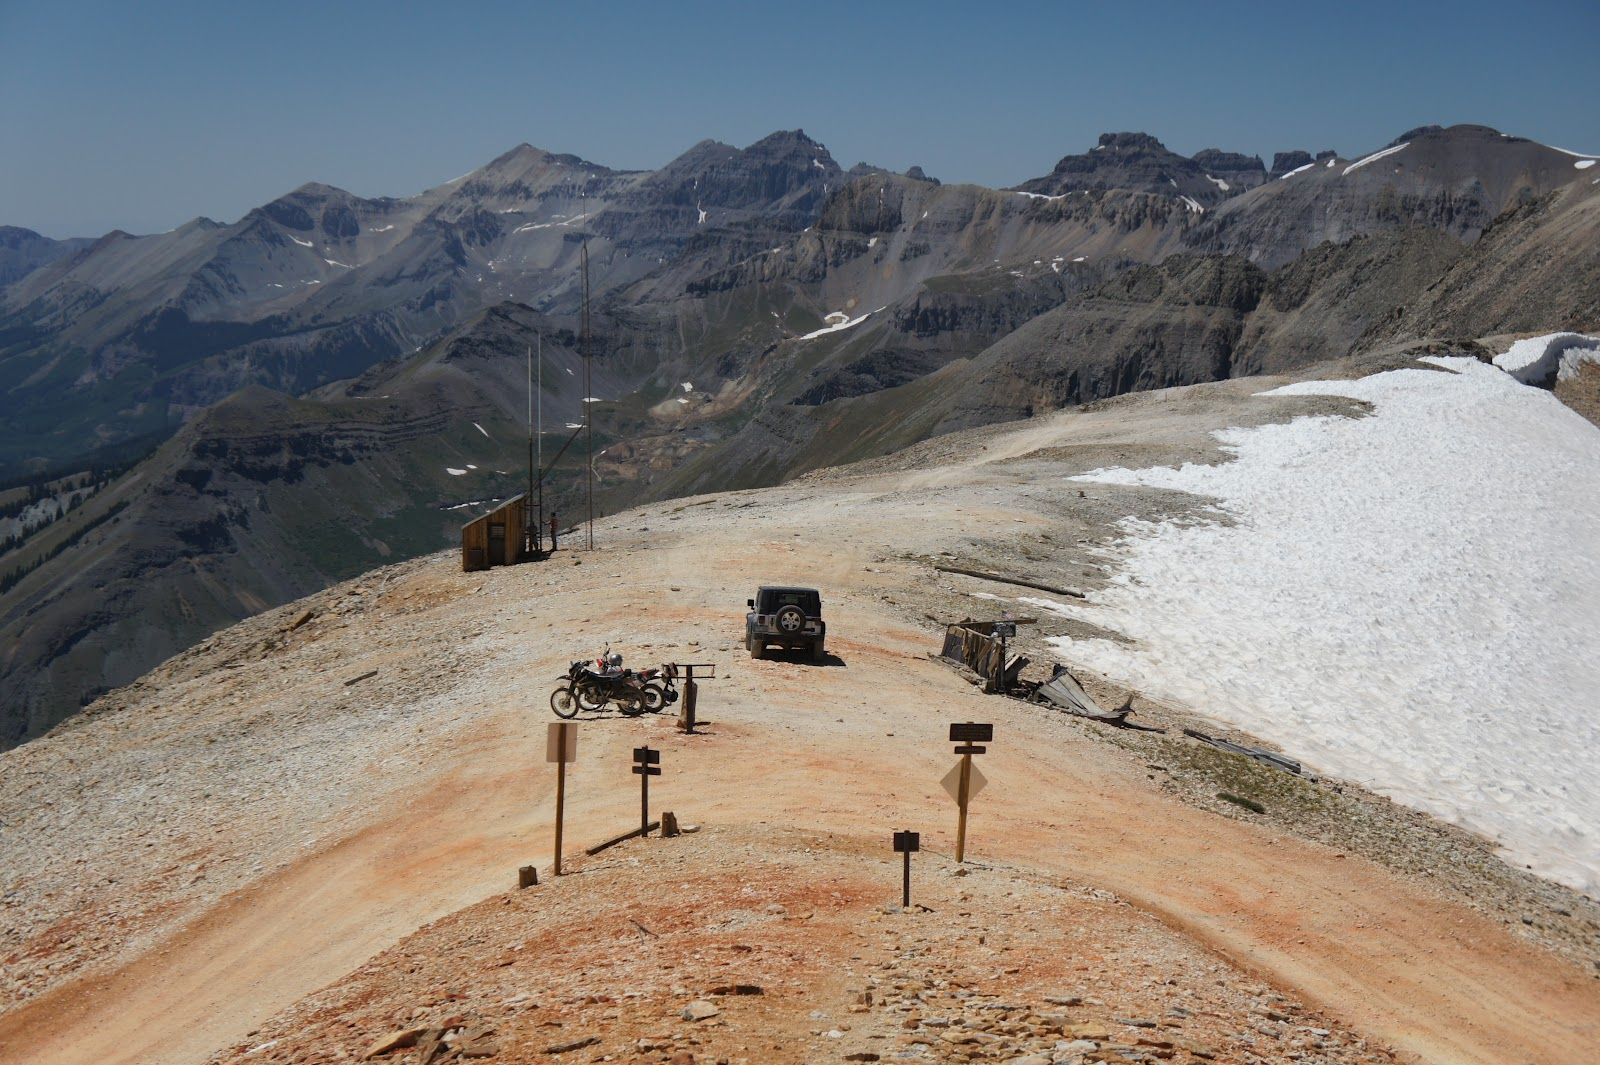 Mountains Rule Sunny Day For Imogene Pass